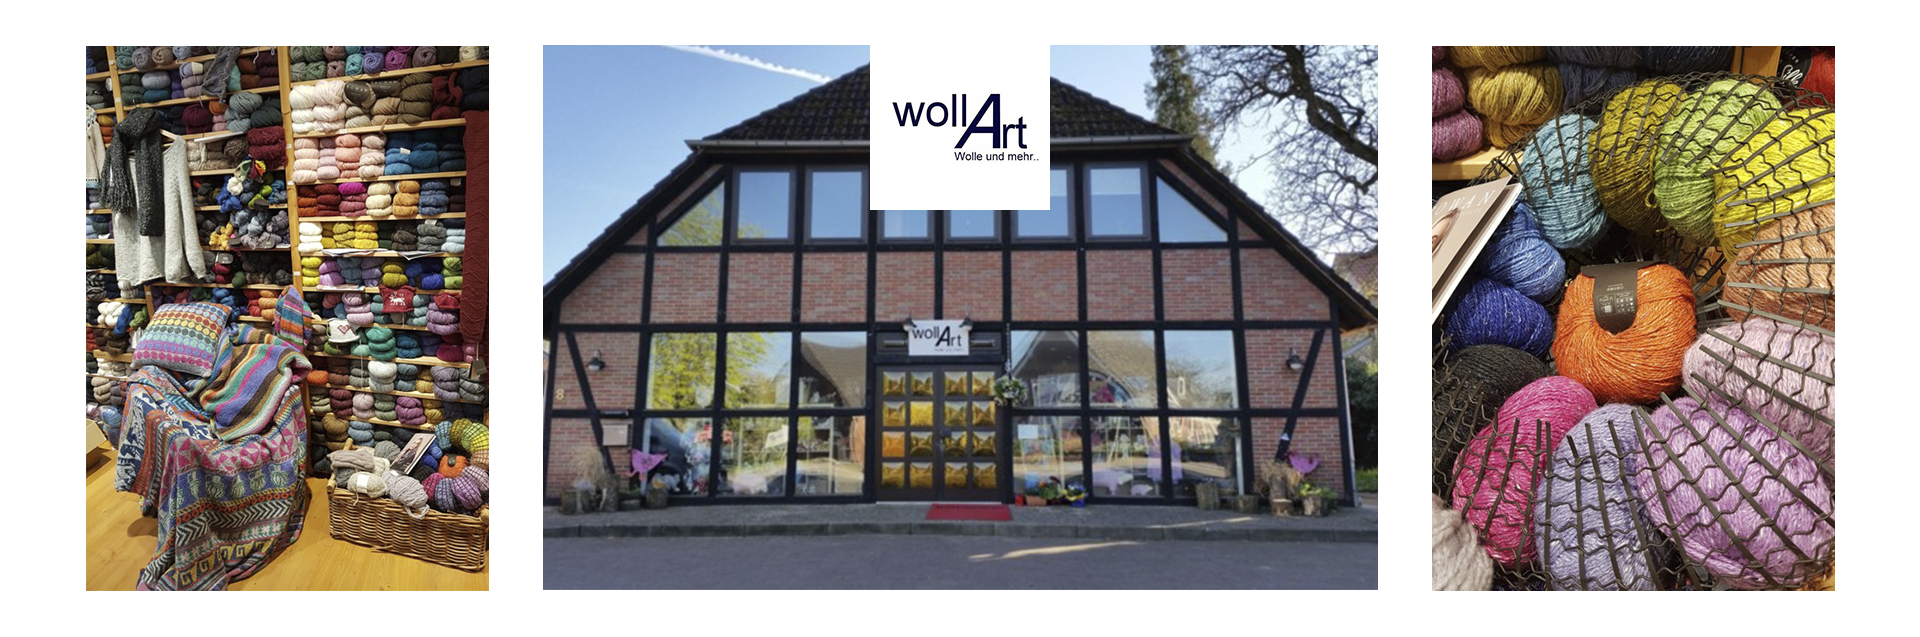 WollArt is the shop to visit if you are looking for a missing ball or two to finish a Rowan design in a discontinued yarn. Ute Rudat's lovely shop in Salzhausen, an idyllic village to the south of Hamburg, is a treasure trove of Rowan yarns.